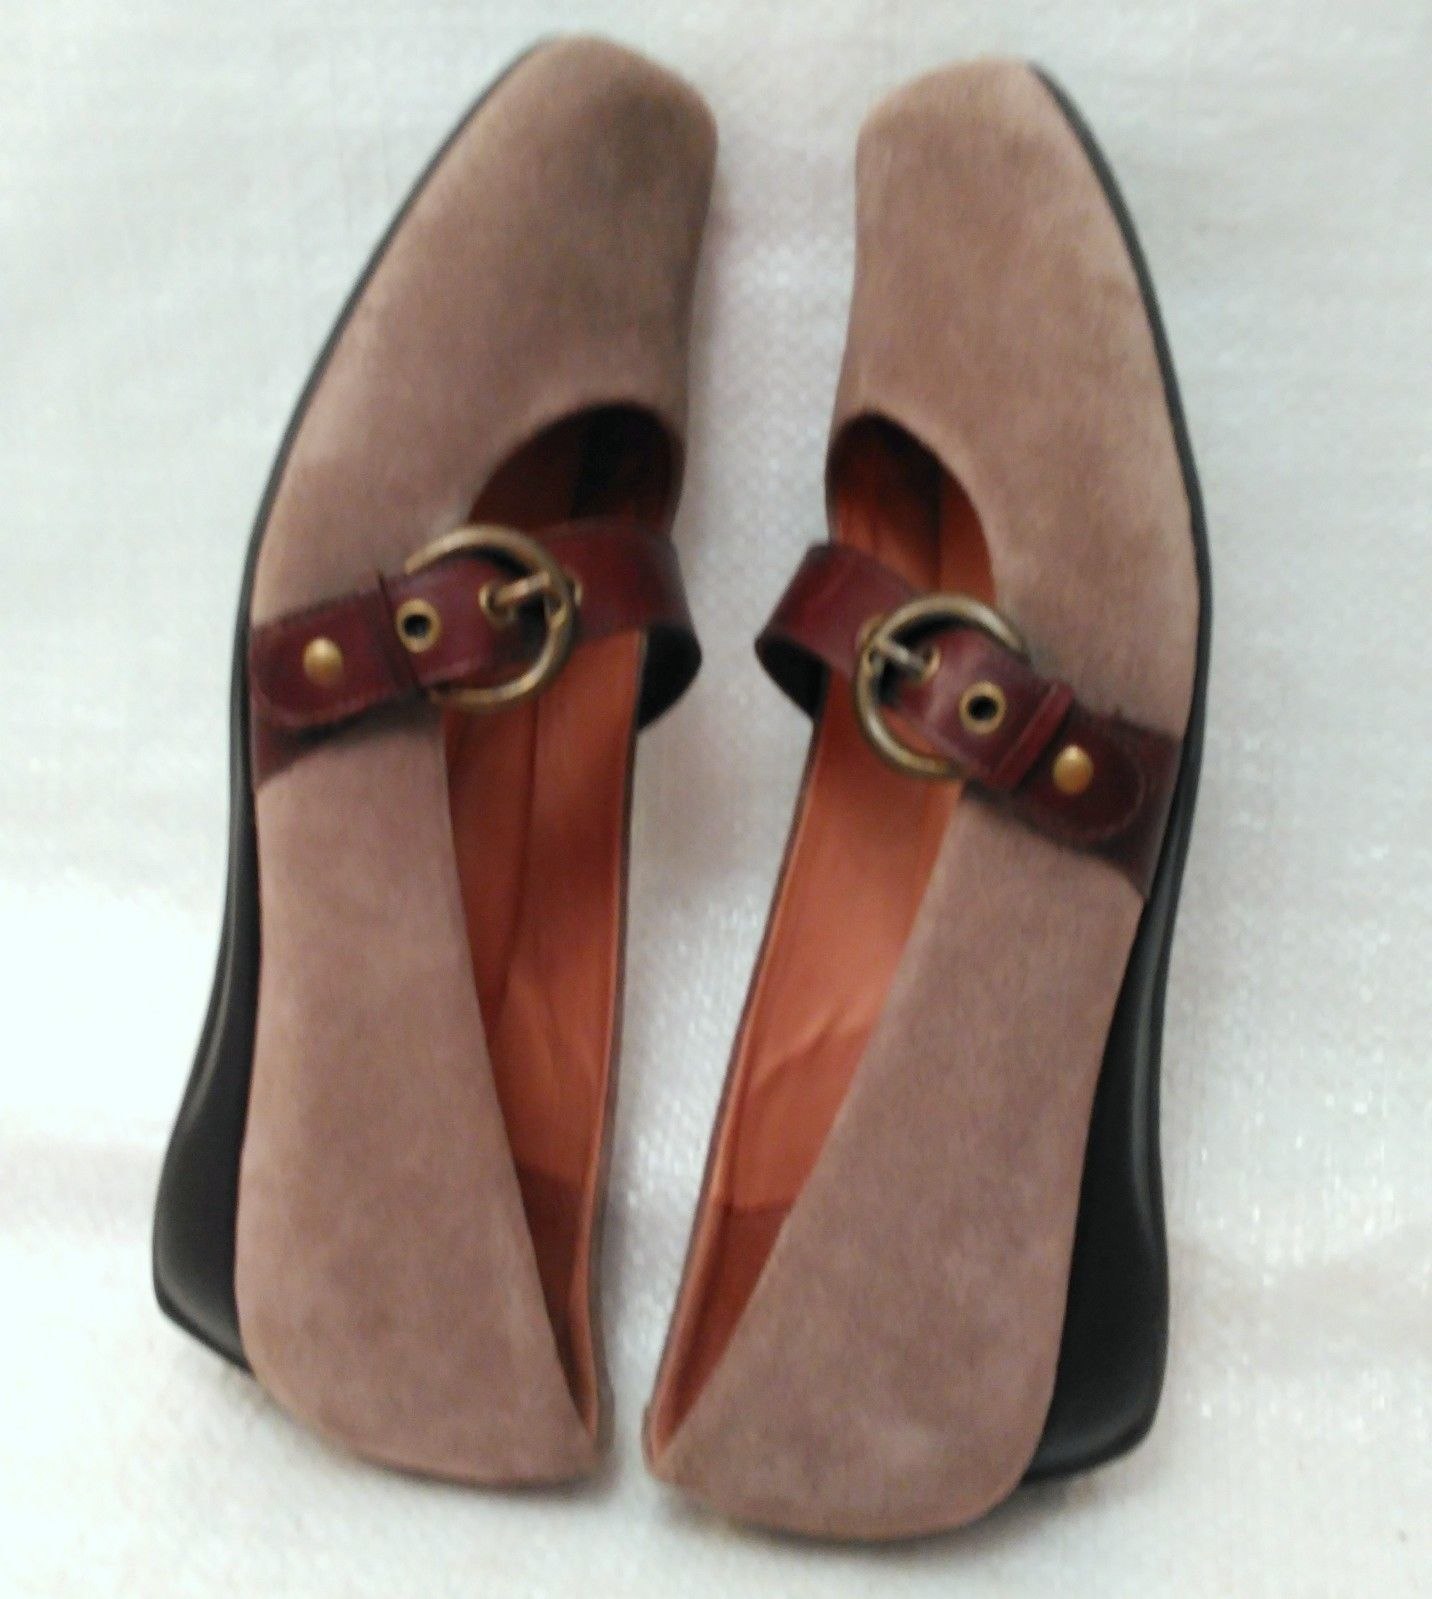 Nurture Women's Shoes 8 M Suede Leather Upper w/ Buckle Model Hymn